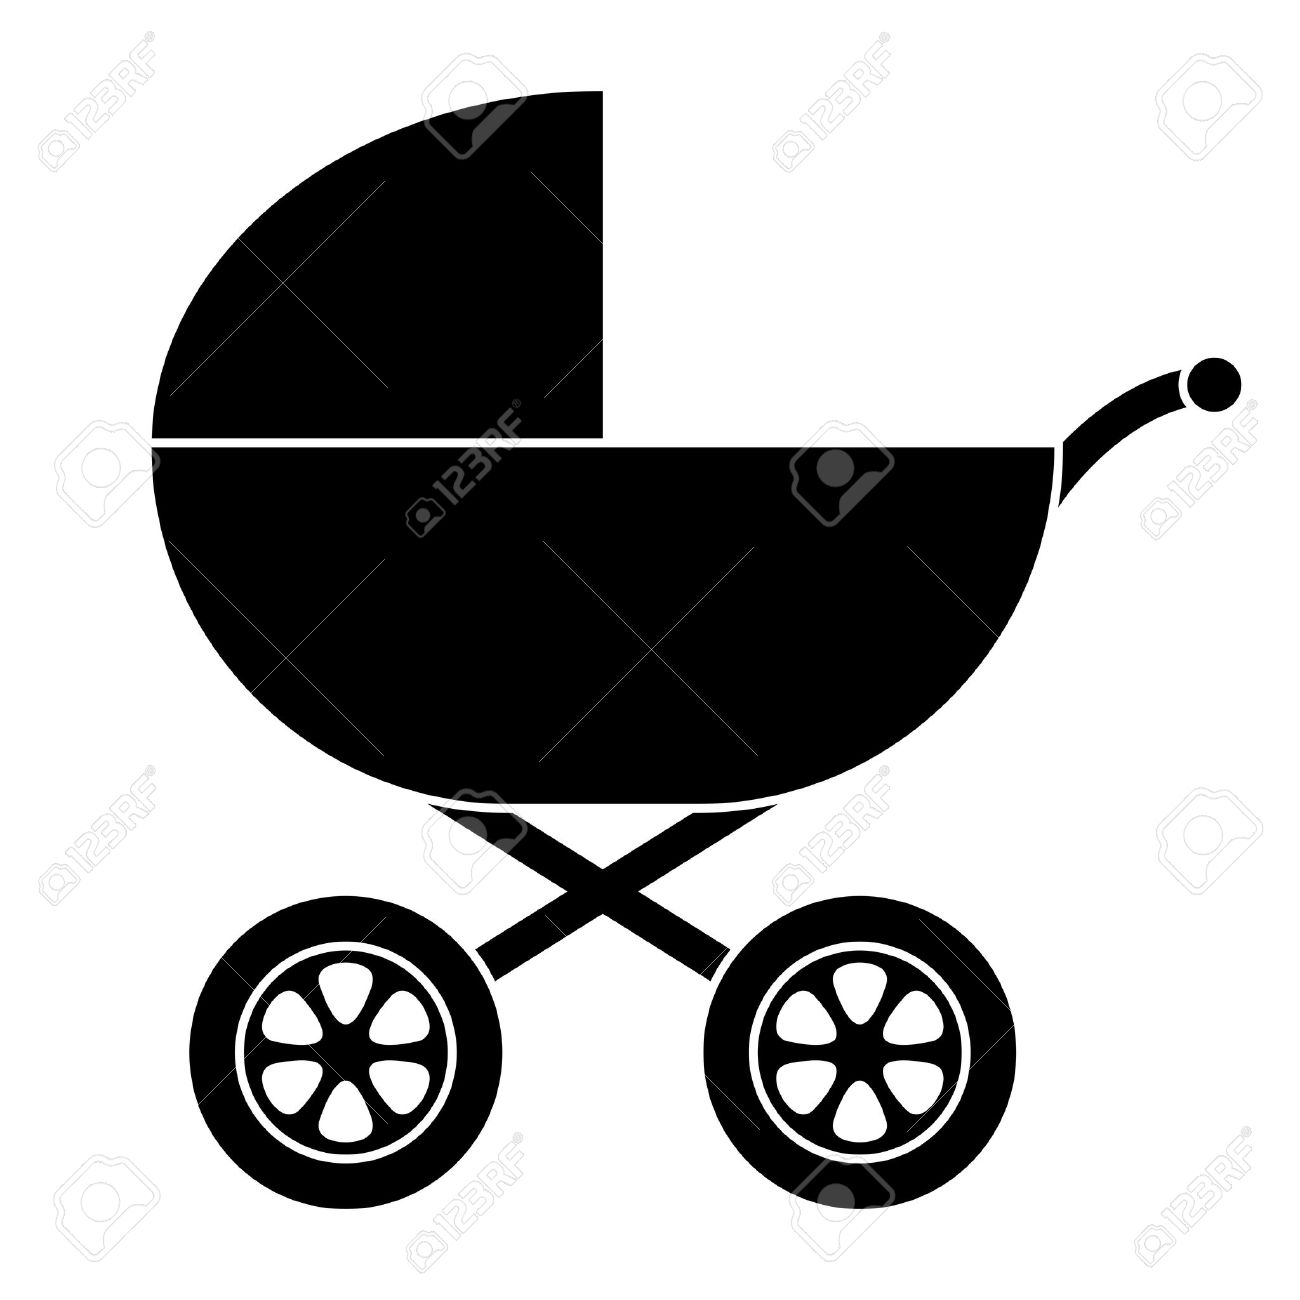 Baby Carriage Silhouette - 5710299